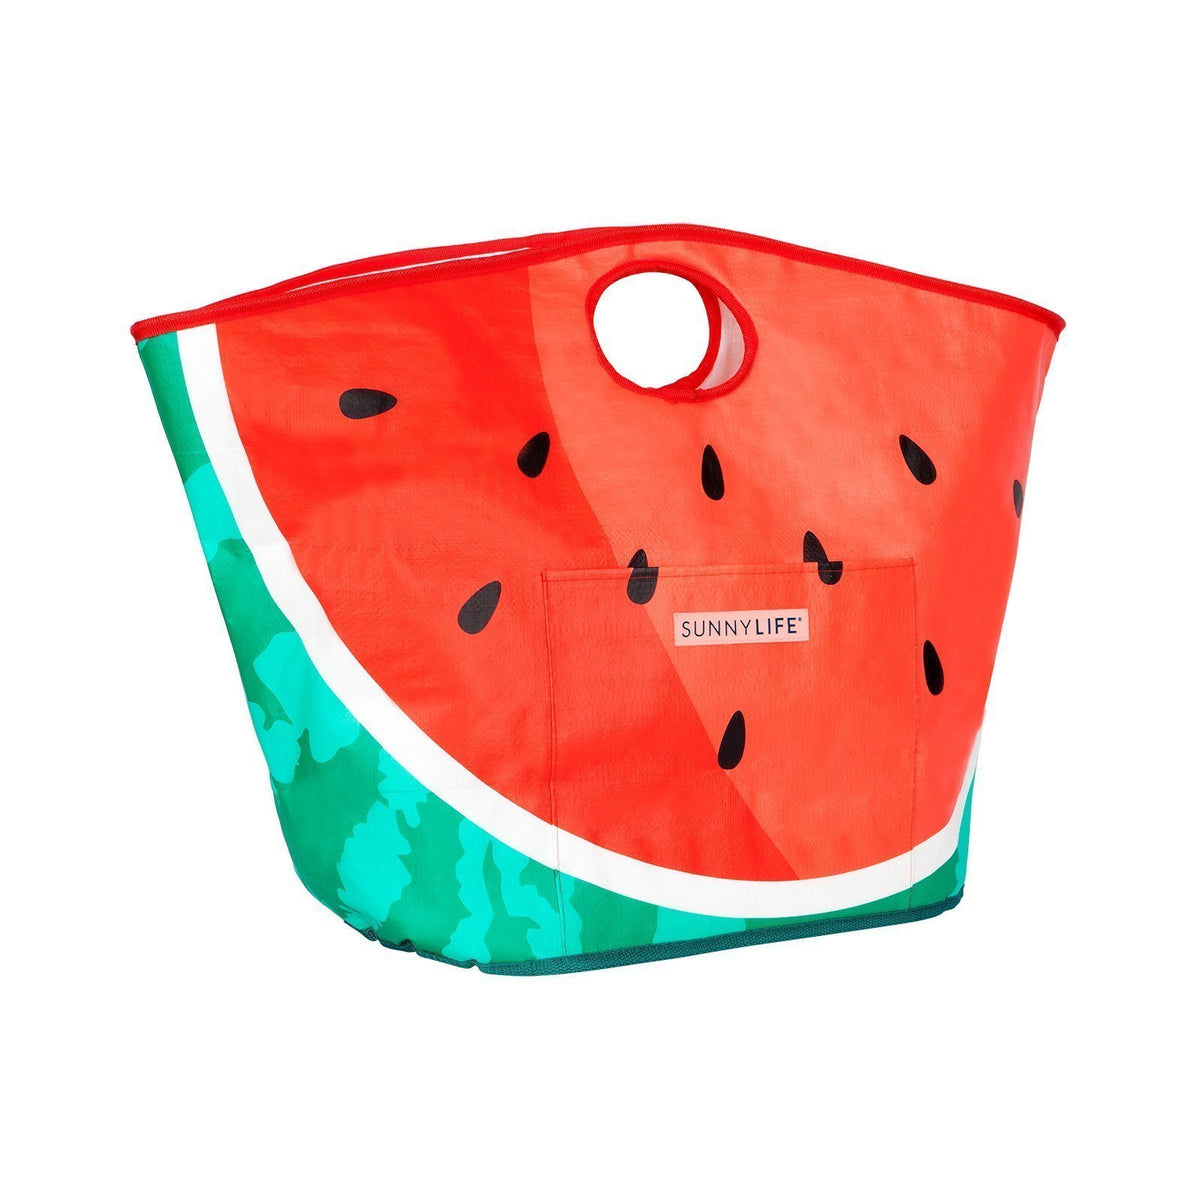 Sunnylife | Carryall Bag | Watermelon